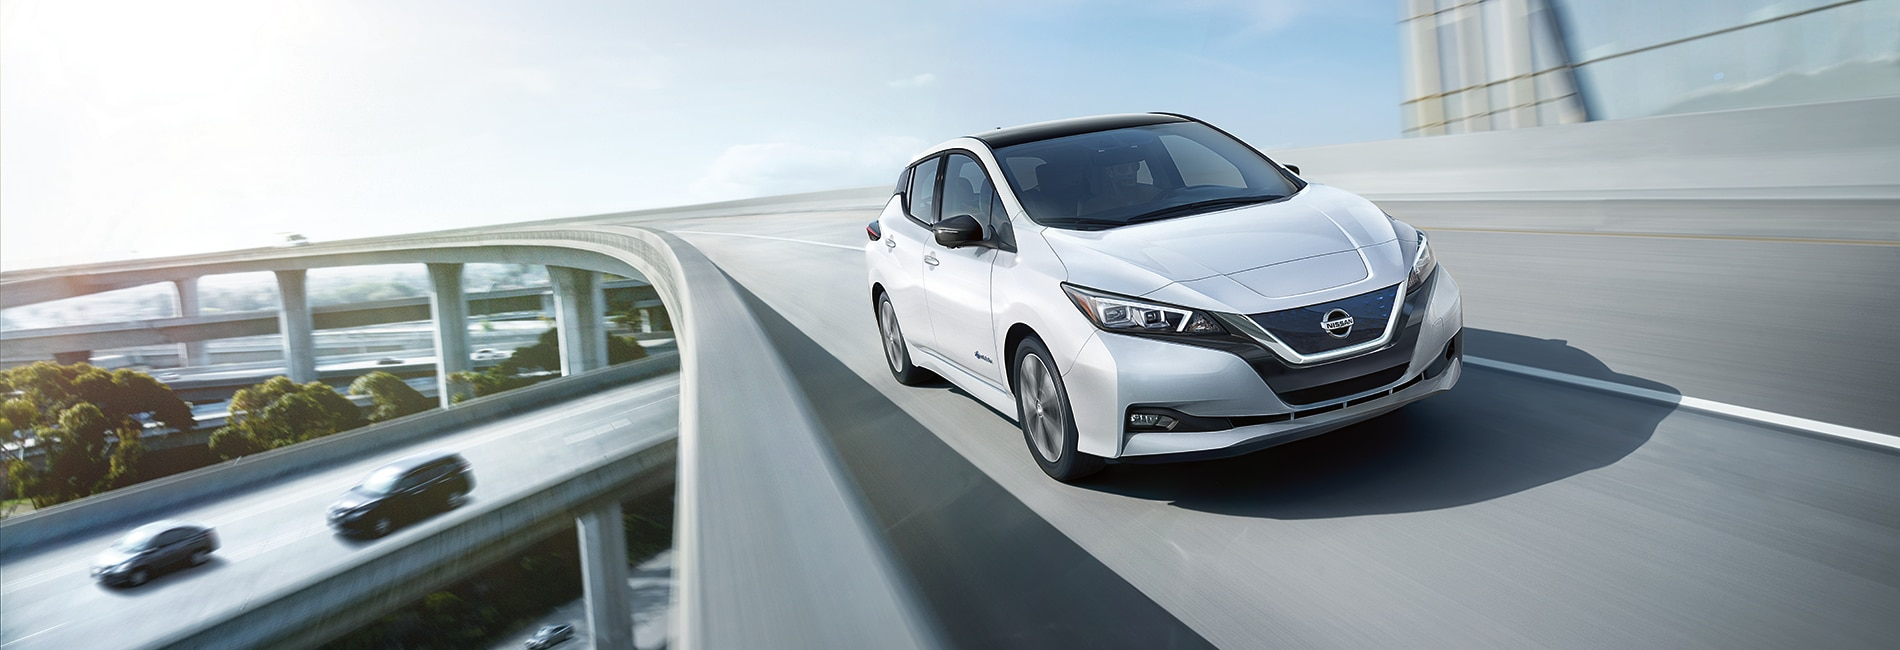 Nissan Leaf Exterior Vehicle Features